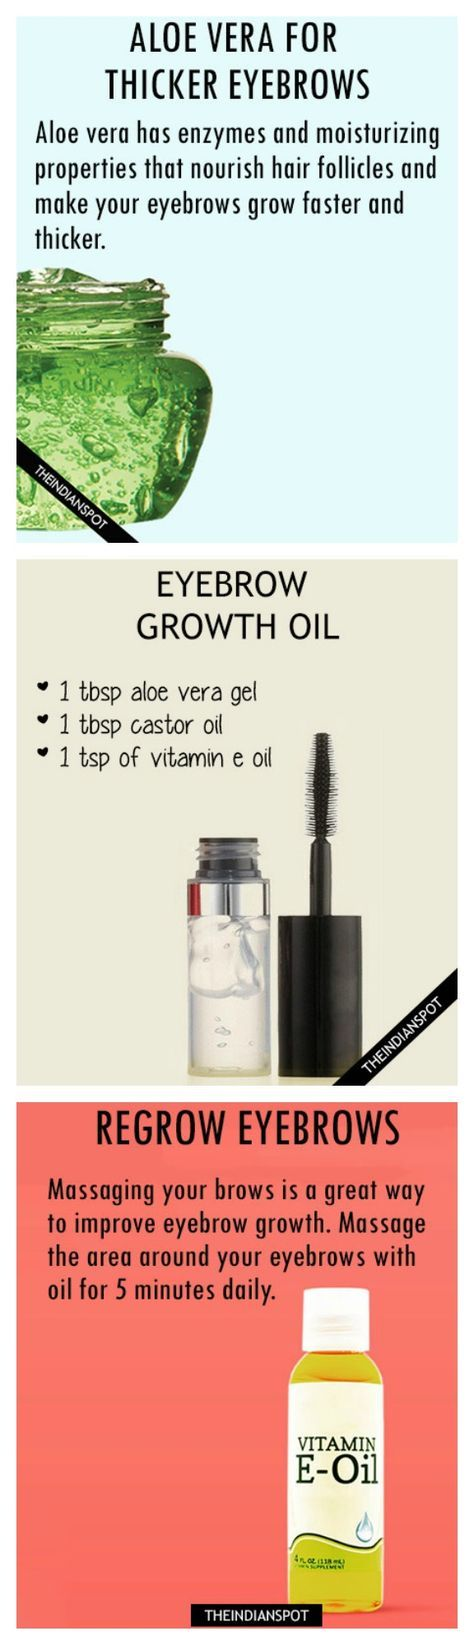 Home remedies for eyebrow growth